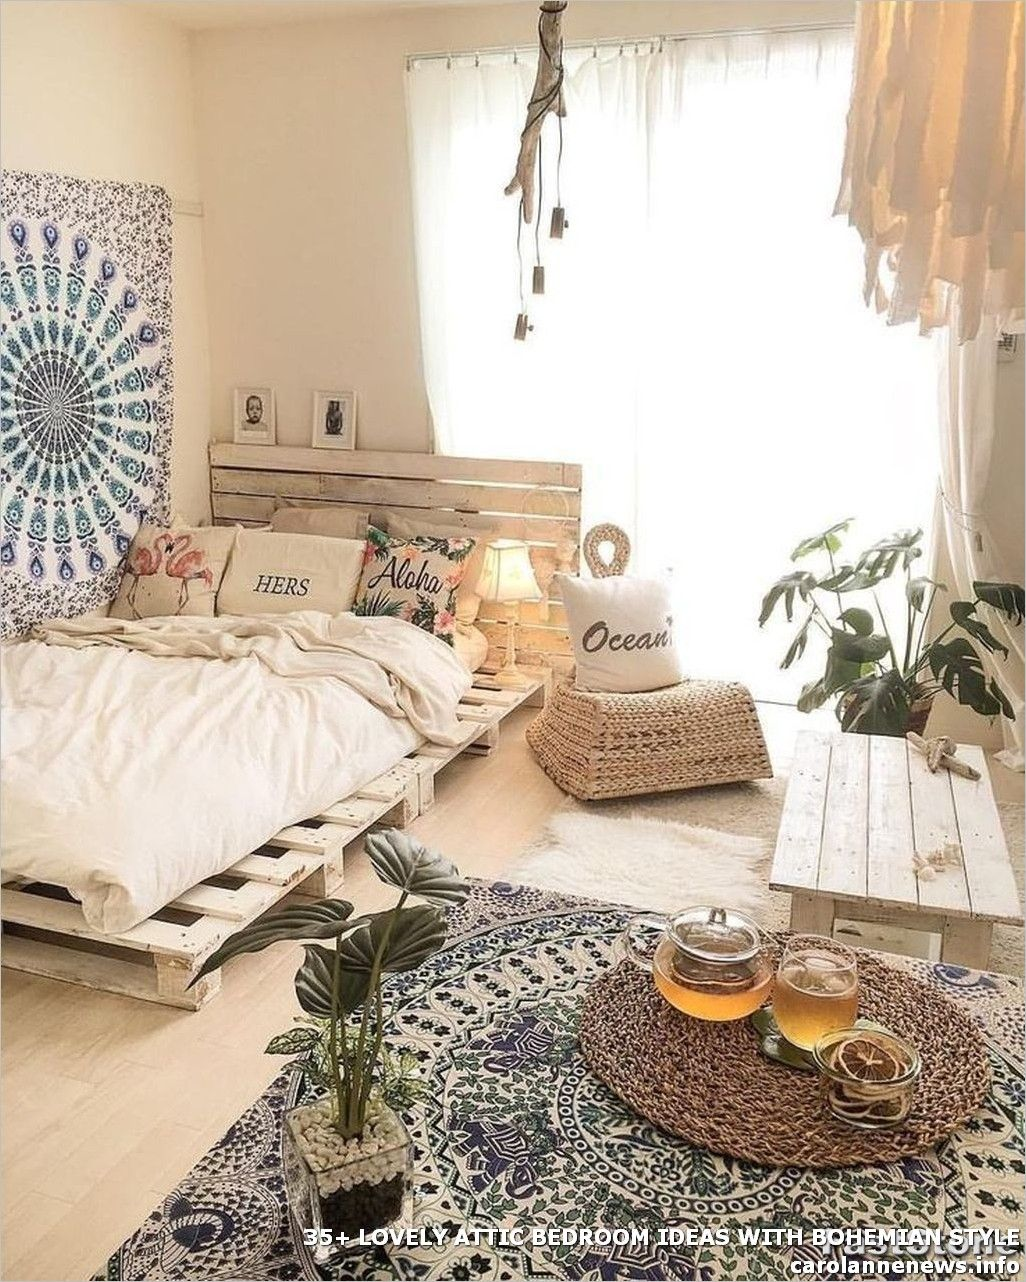 35+ #LOVELY #ATTIC #BEDROOM #IDEAS #WITH #BOHEMIAN #STYLE ...